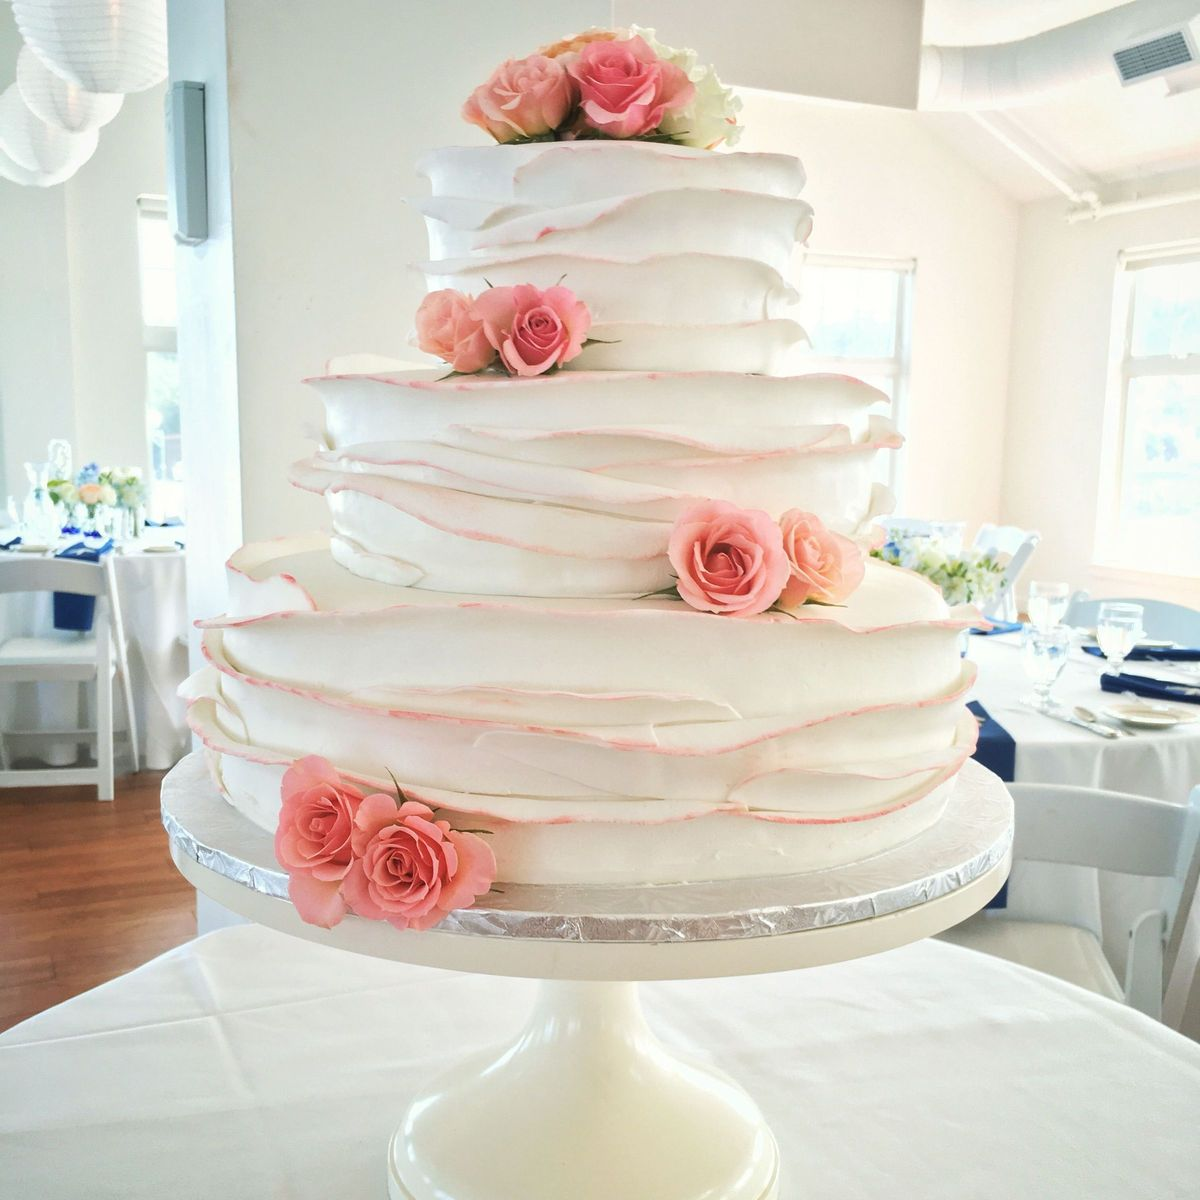 Veronica\'s Sweetcakes - Wedding Cake - Marshfield, MA - WeddingWire